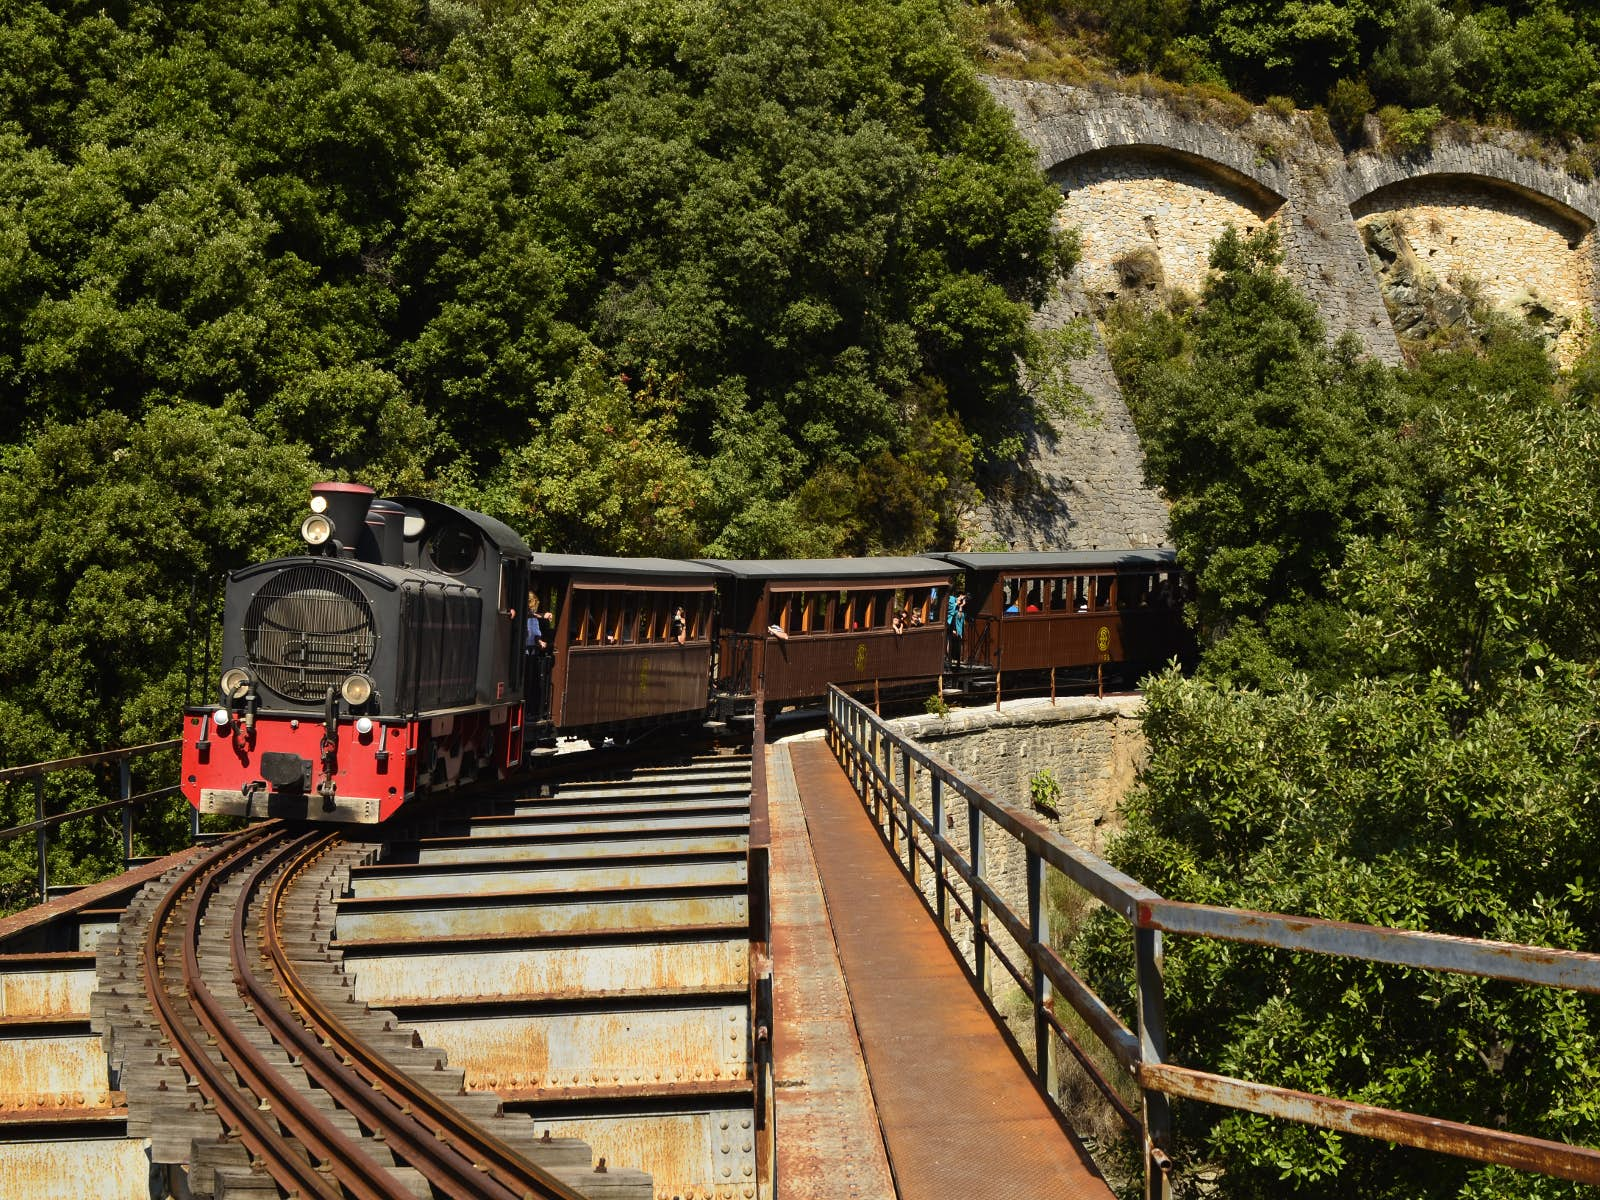 All aboard: Greece's scenic train journeys - Lonely Planet